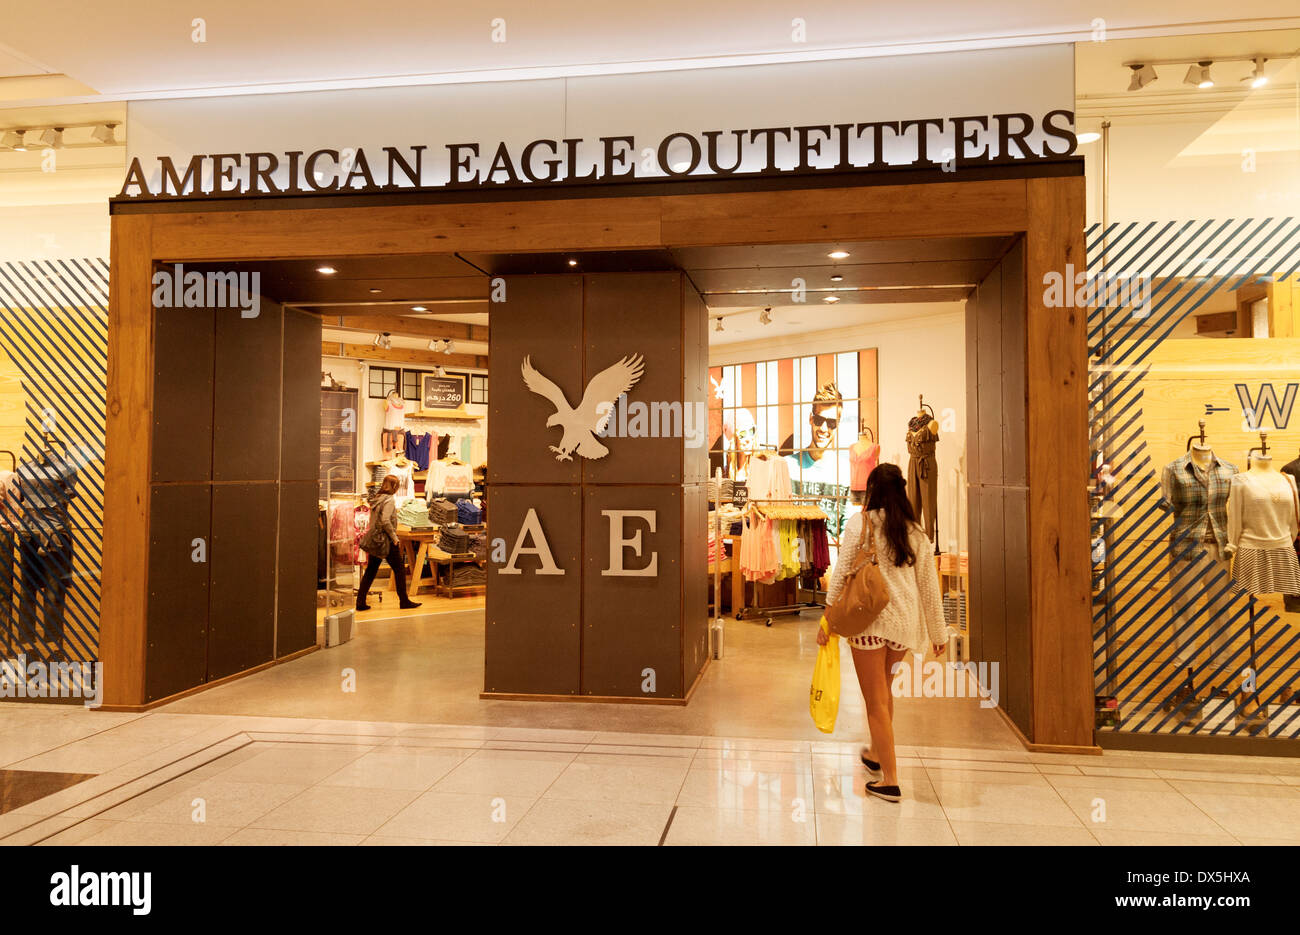 american eagle outfitters store shop dubai mall dubai uae united stock photo royalty free. Black Bedroom Furniture Sets. Home Design Ideas